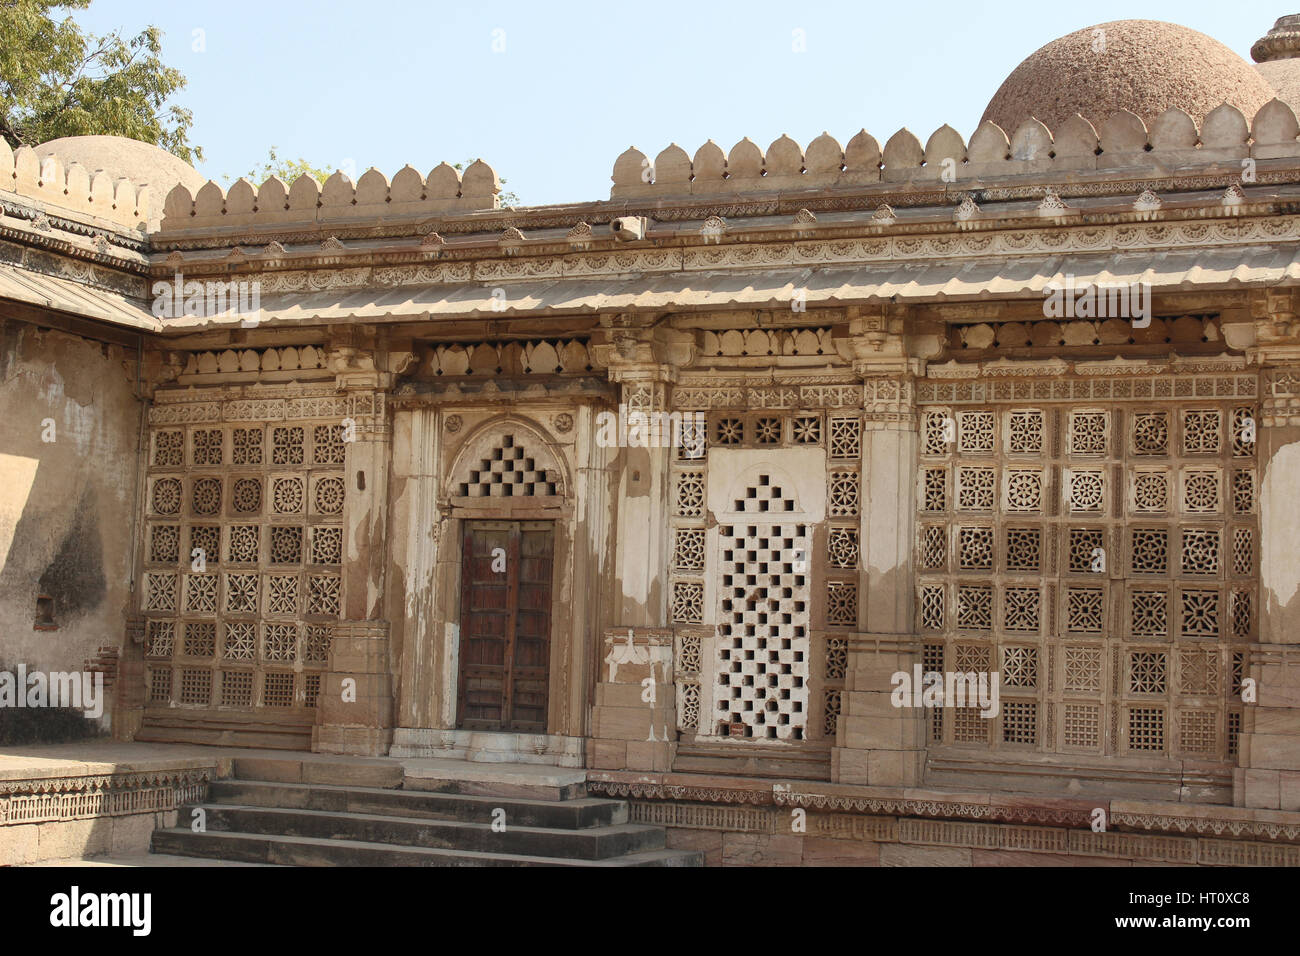 Stone work on the window grills seen from the courtyard near step tank at Sarkehj Roza, Ahmedabad, Gujarat India. - Stock Image